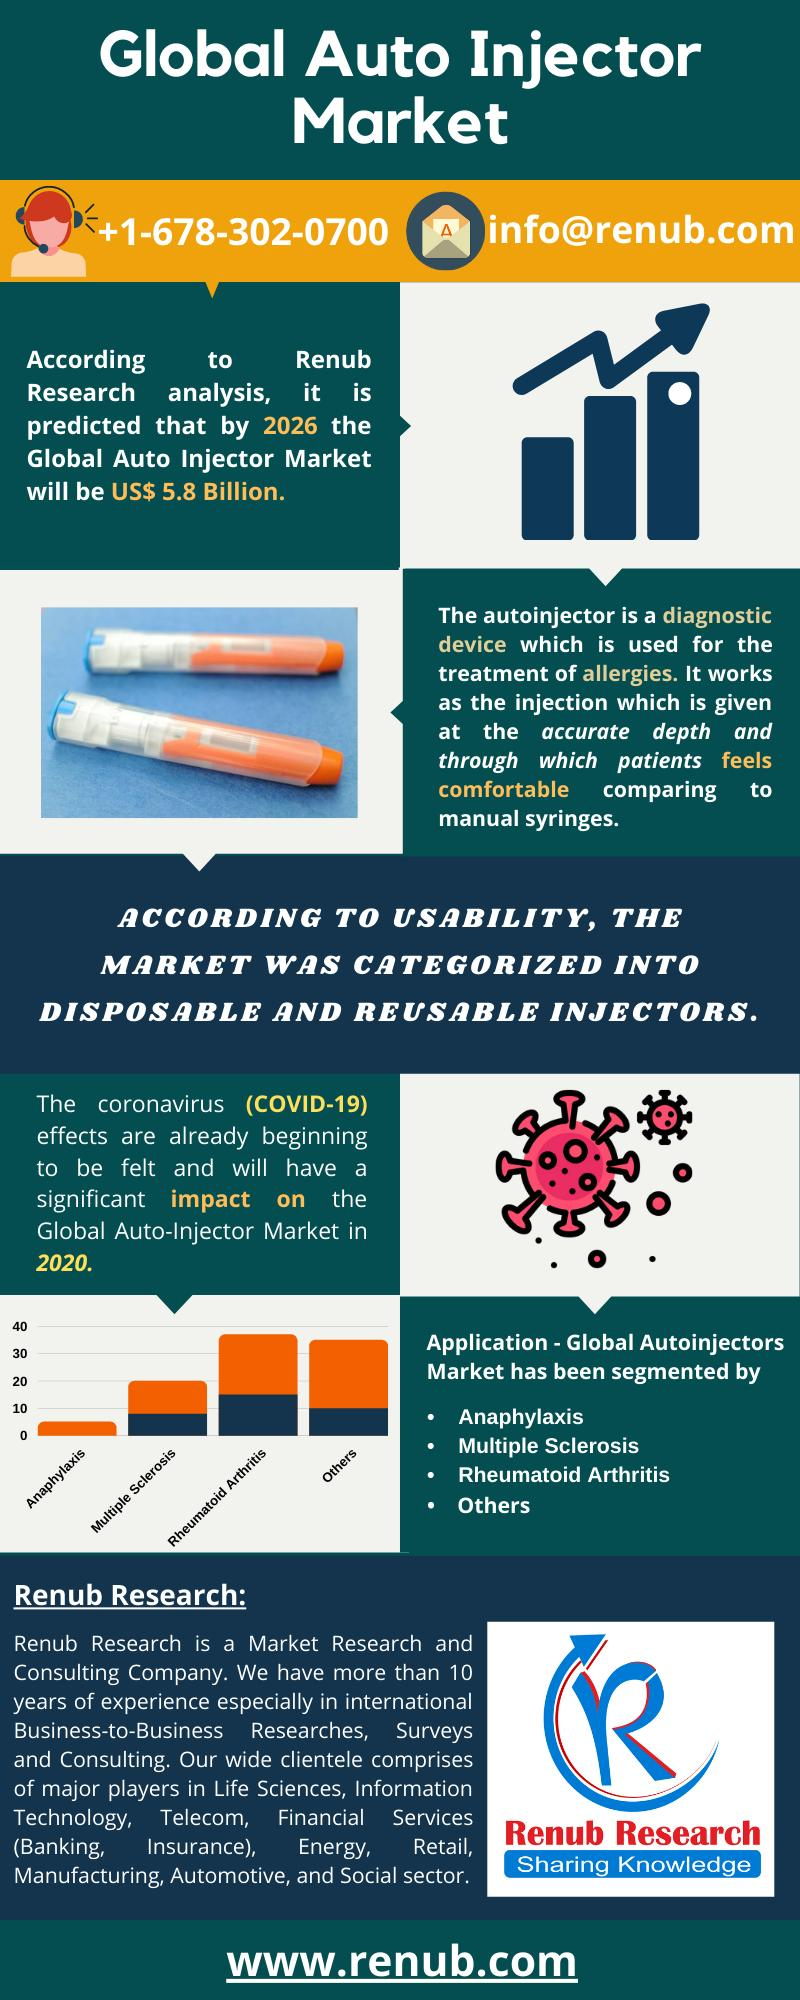 Global Auto Injector Market, Market Research Reports